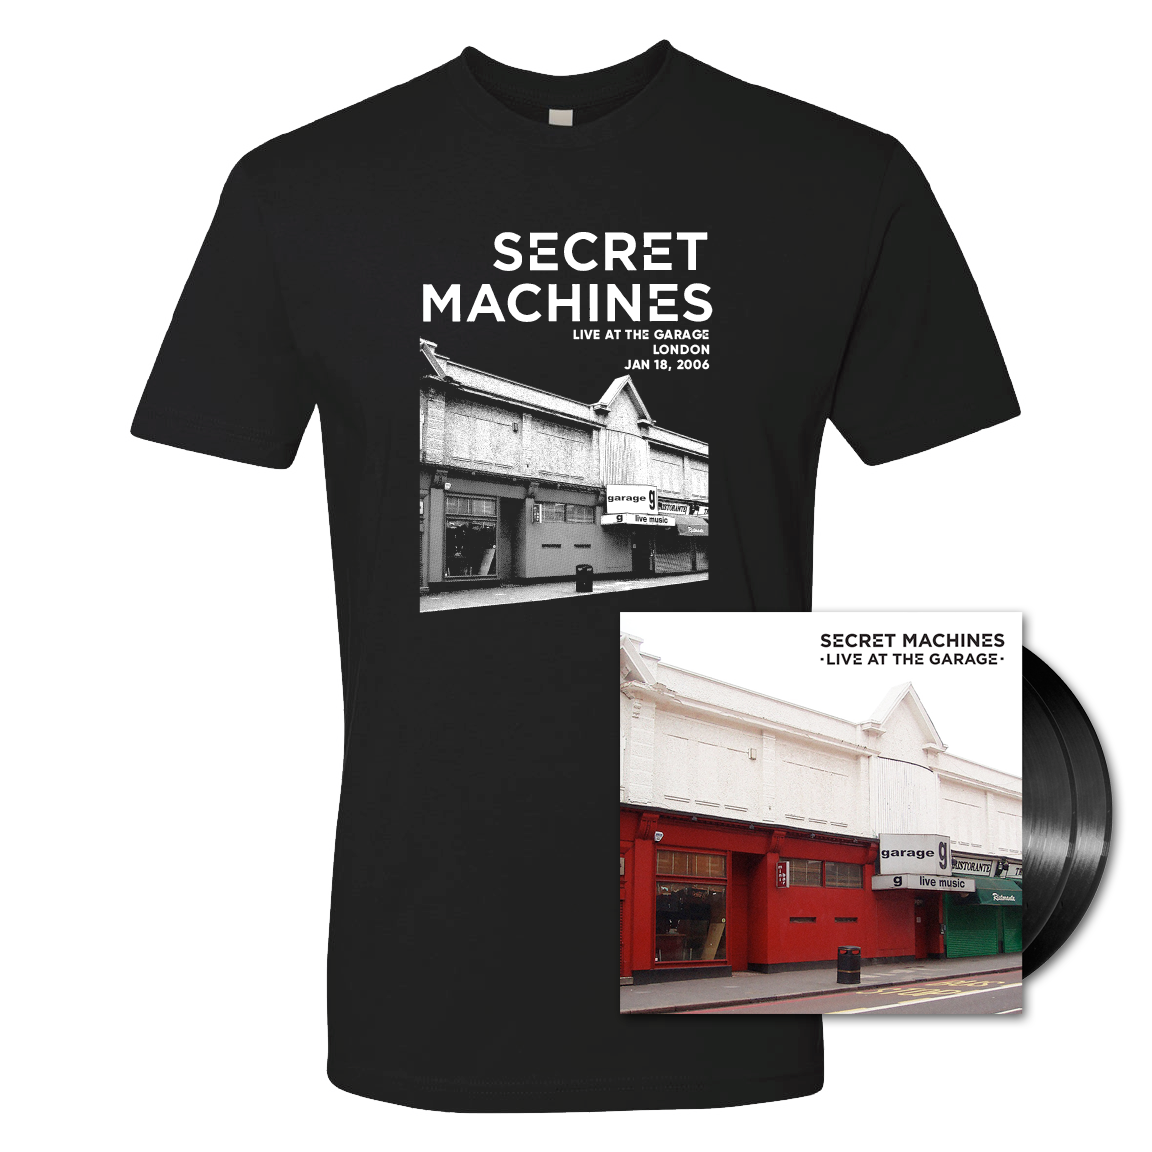 Vinyl + T-shirt Bundle - SOLD OUT